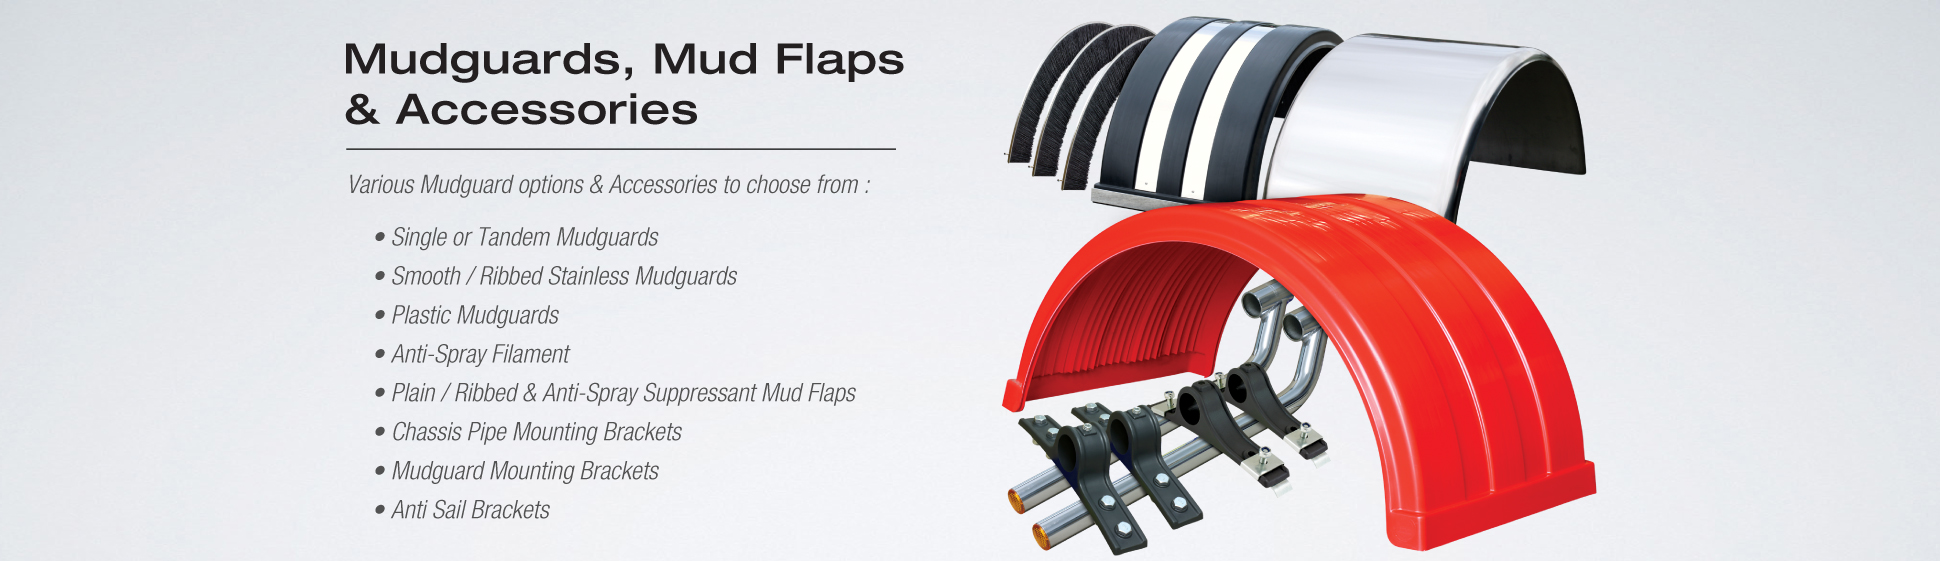 Mudguards Mudflaps Accessories